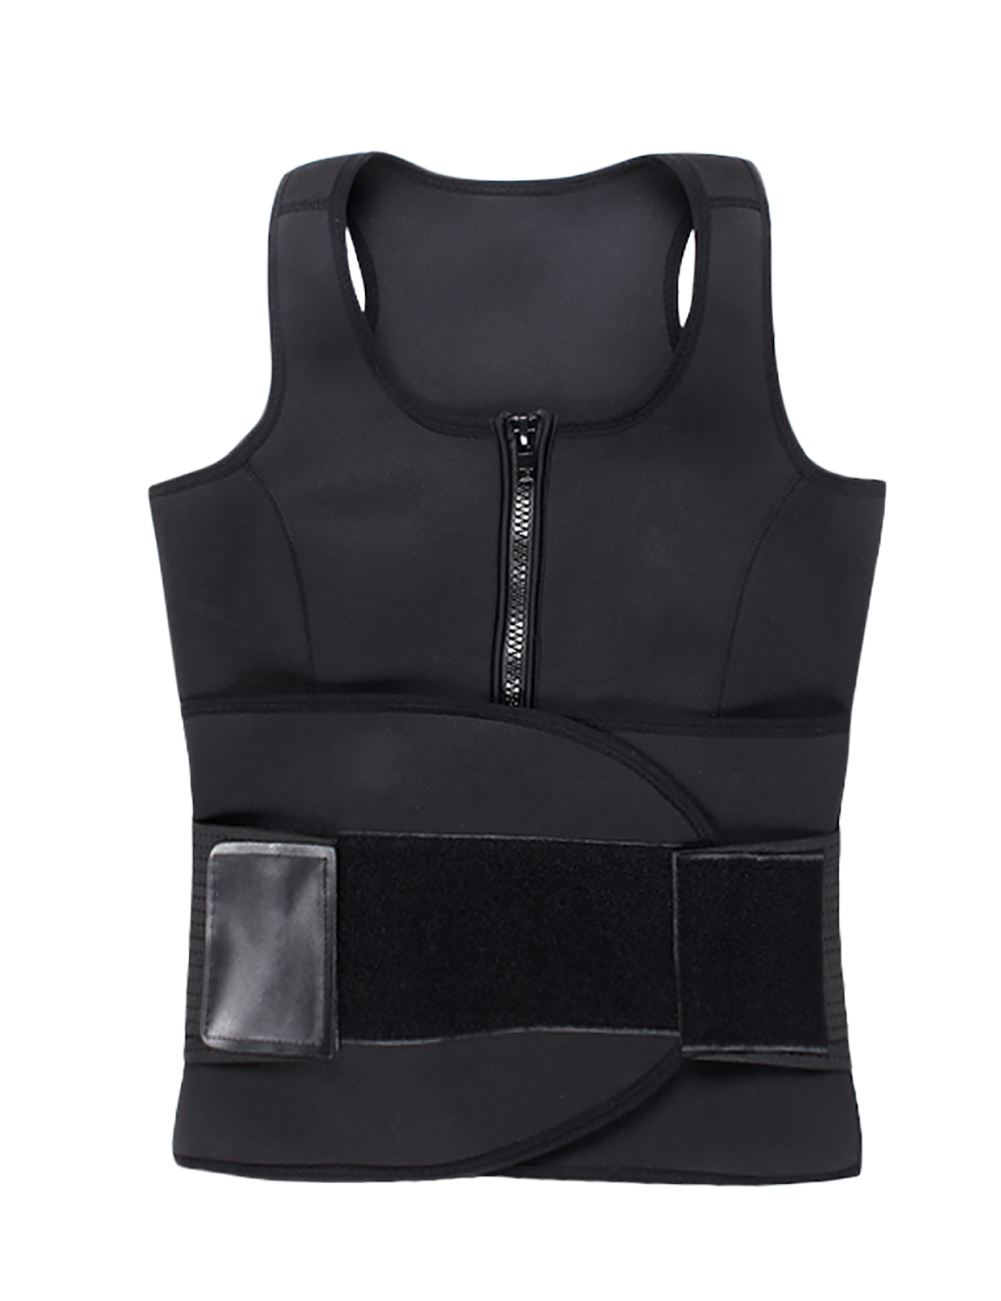 //cdn.affectcloud.com/hexinfashion/upload/imgs/Shapewear/Neoprene_Waist_Trainer/LB4977/LB4977-201911115dc8c3b2c3a7c.jpg